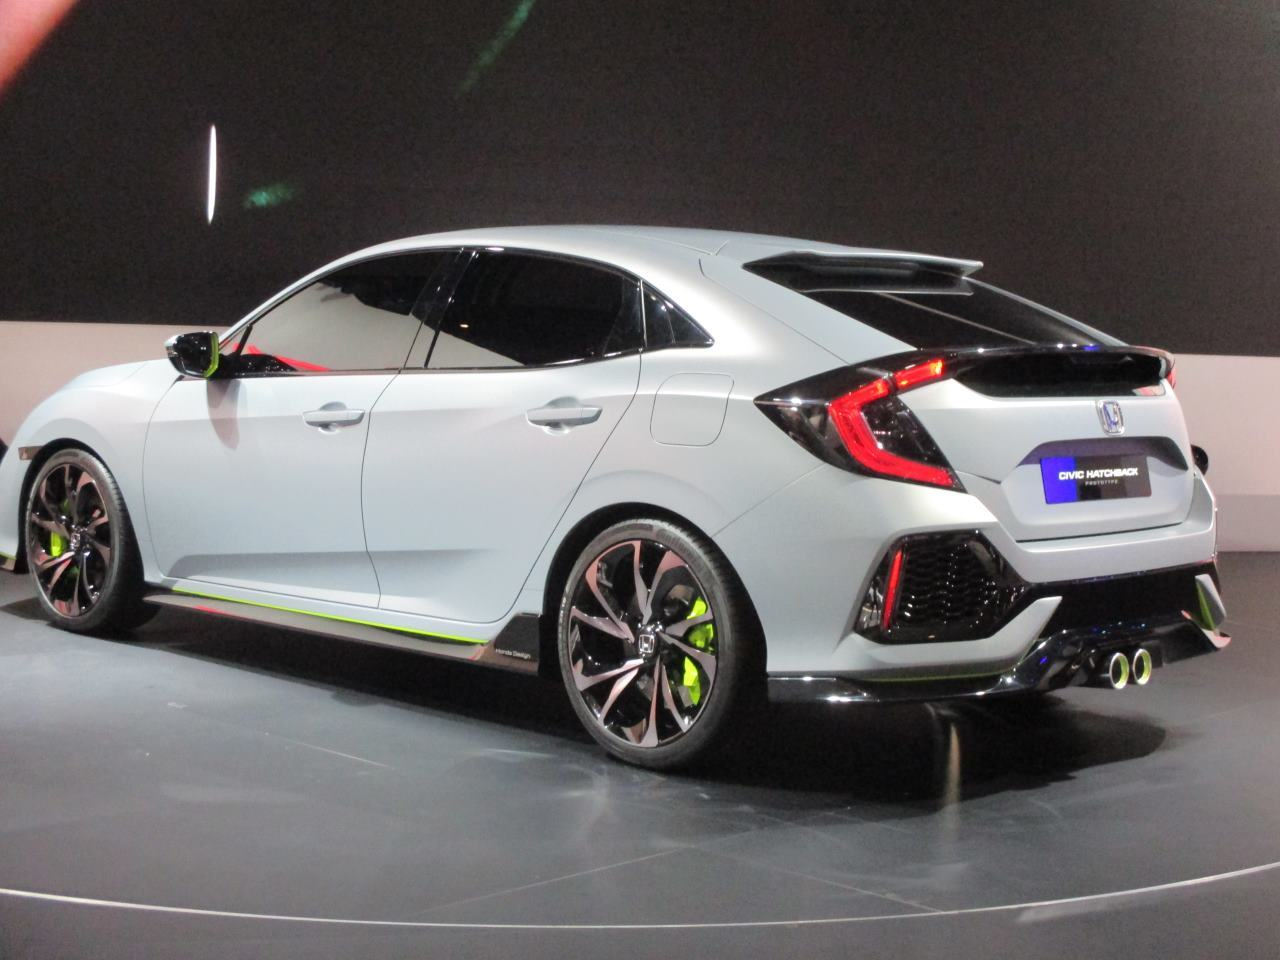 la nouvelle honda civic s 39 annonce avec le concept civic hatchback photo 19 l 39 argus